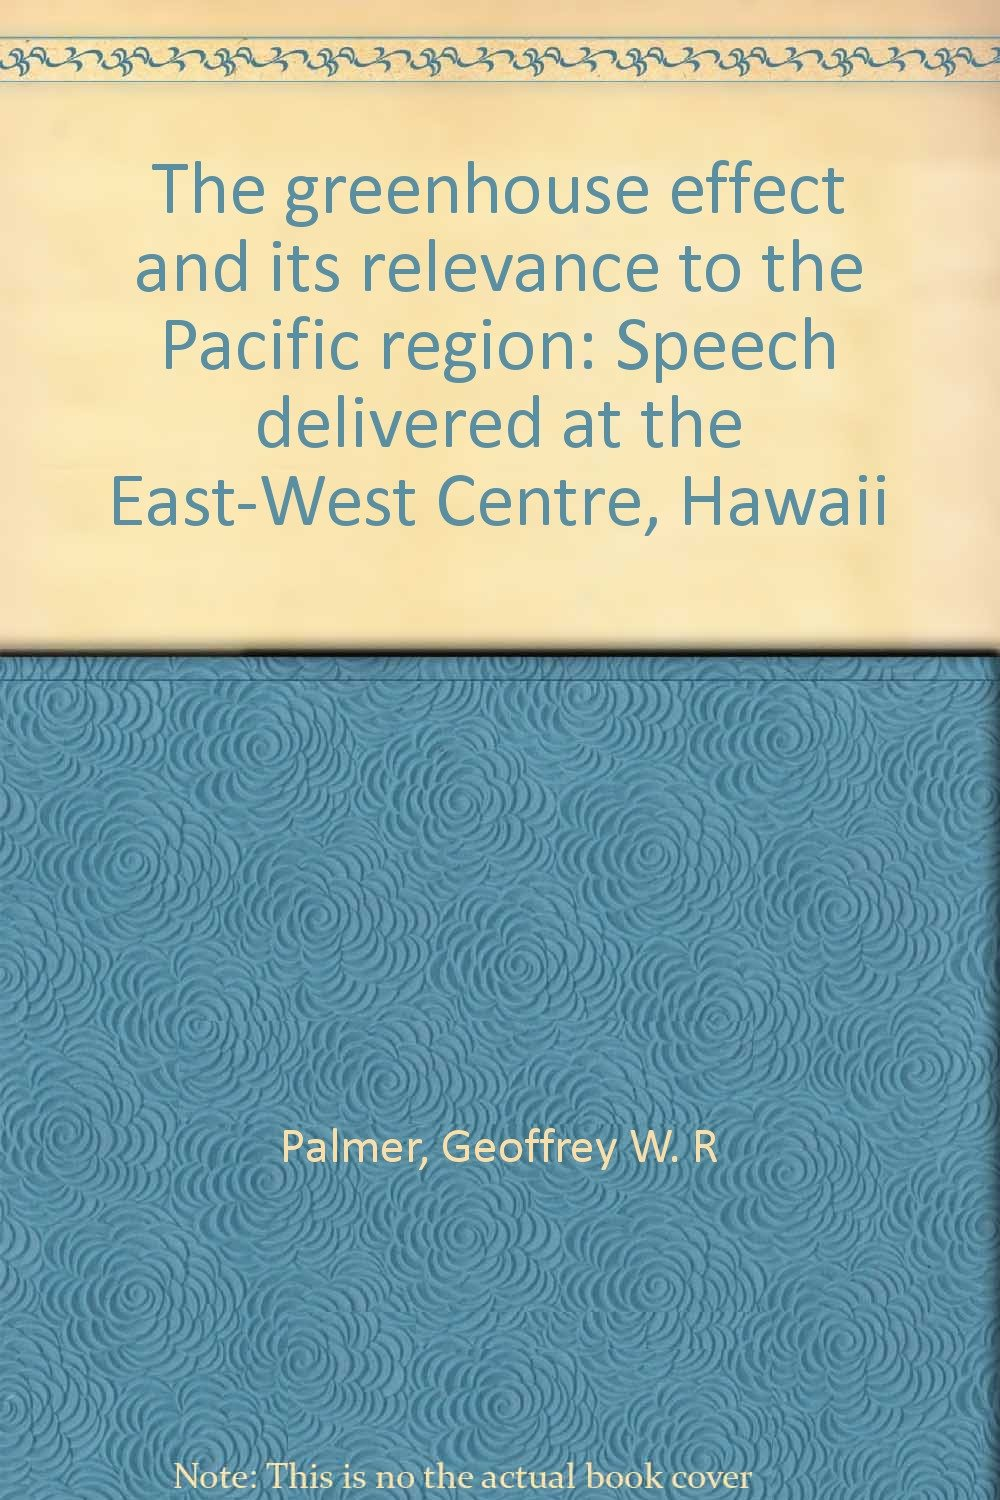 The greenhouse effect and its relevance to the Pacific region: Speech delivered at the East-West Centre, Hawaii